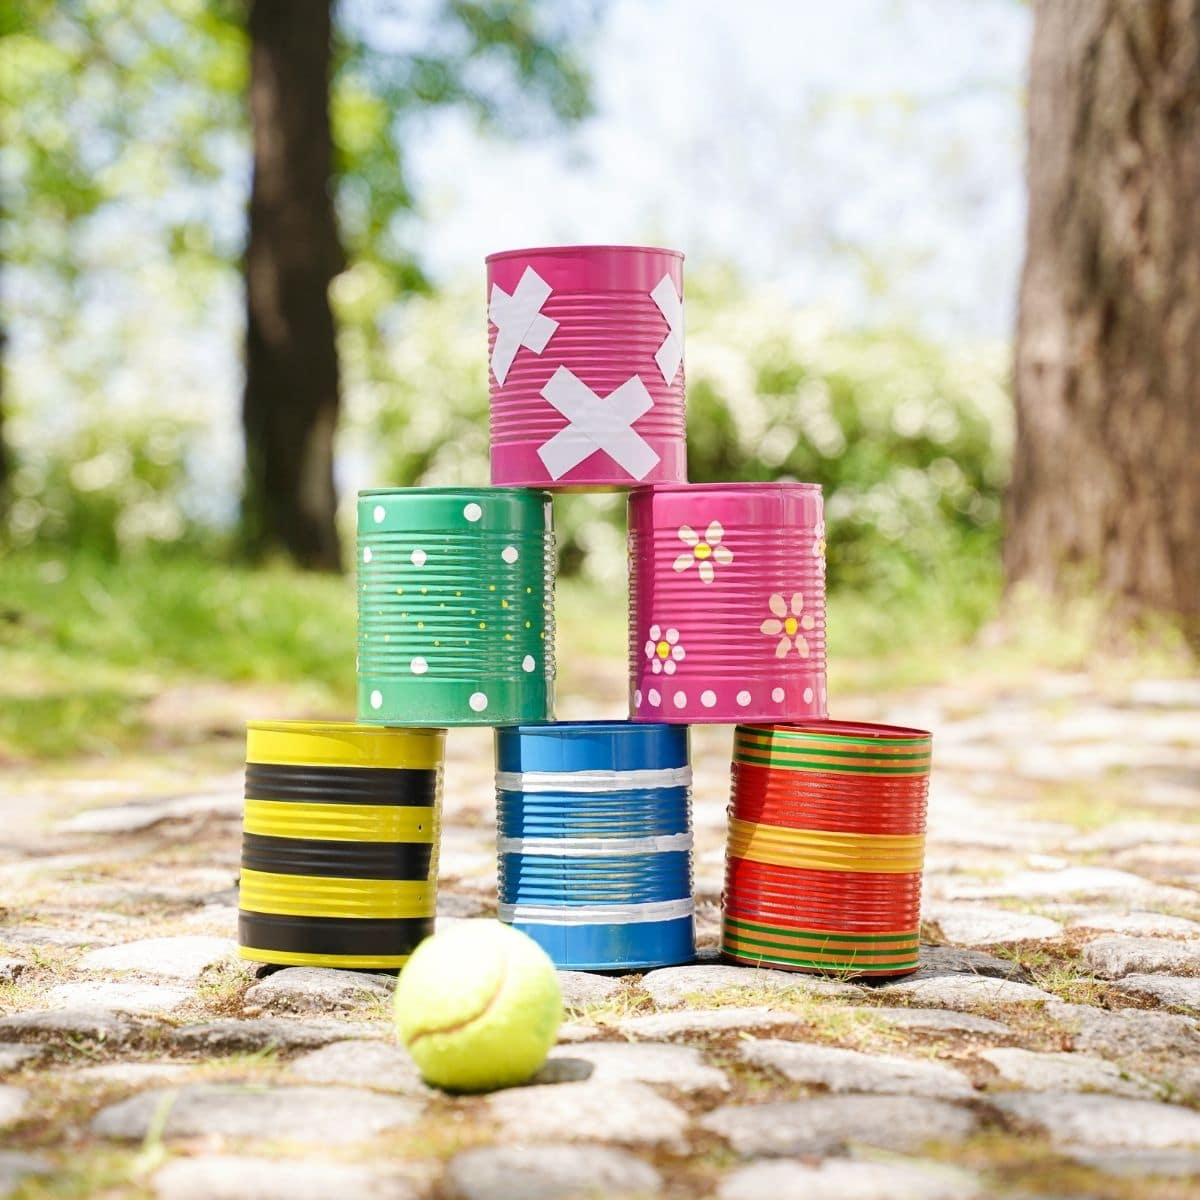 Six painted tin cans stacked together on stone